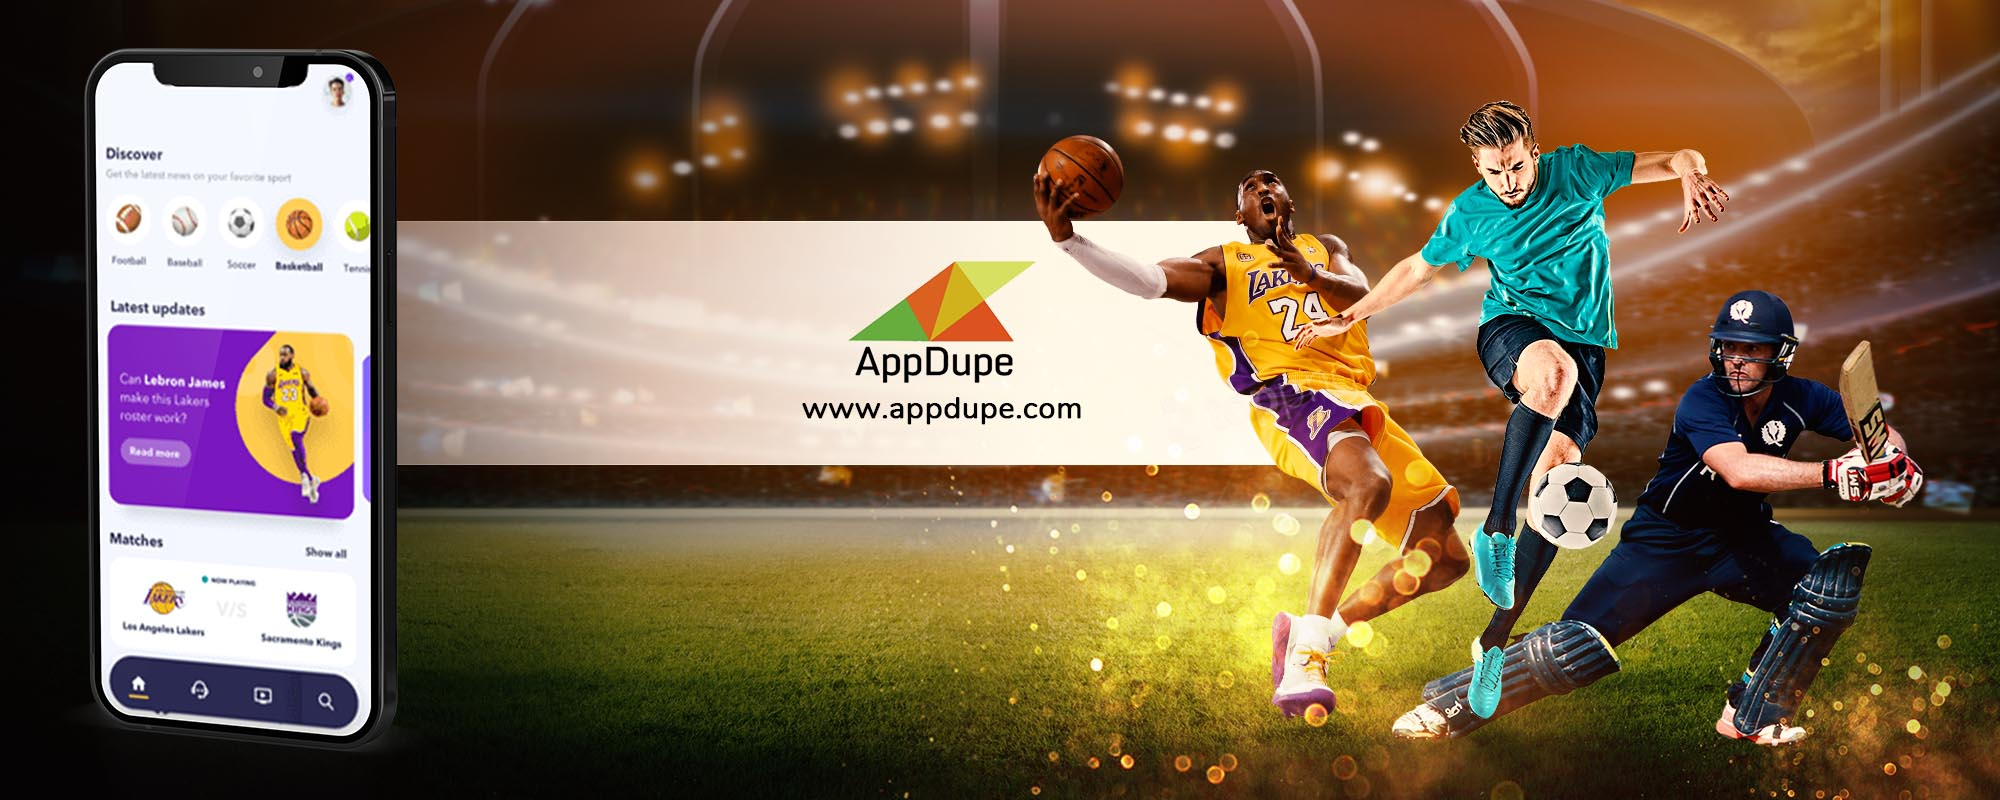 NFT-Marketplace with Sports